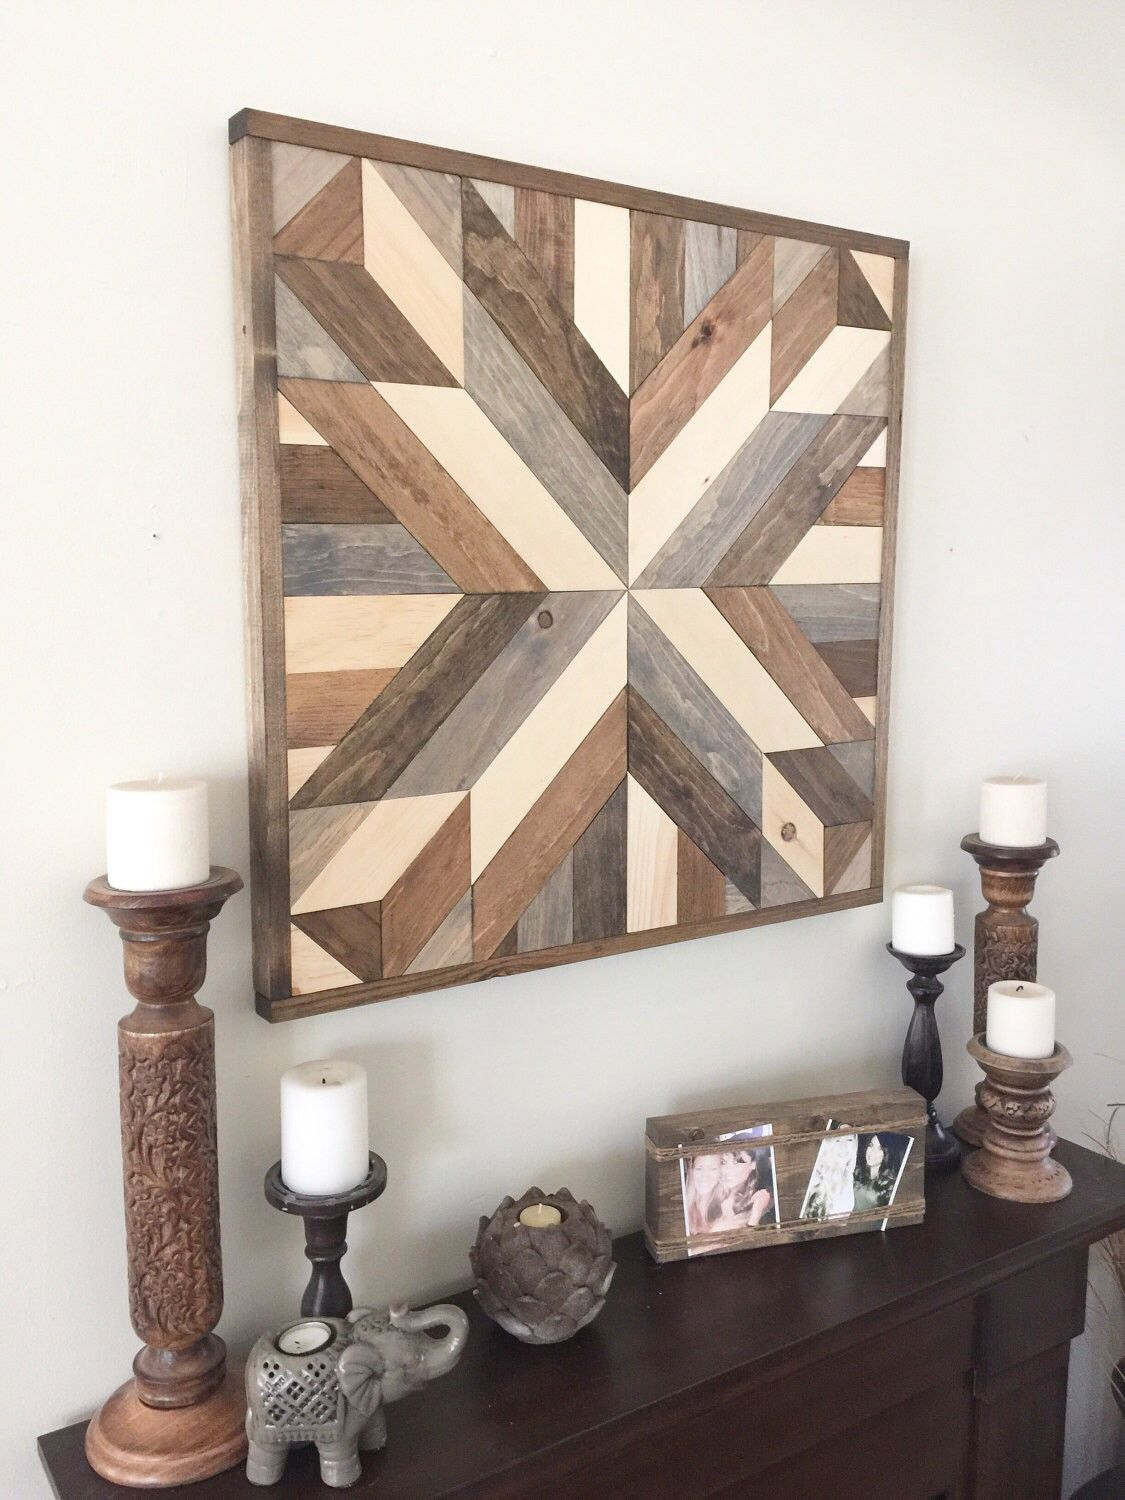 Wooden Wall Art Wooden Barn Star Rustic Wood Wall Art Barn Wood Decor Rustic Wood Walls